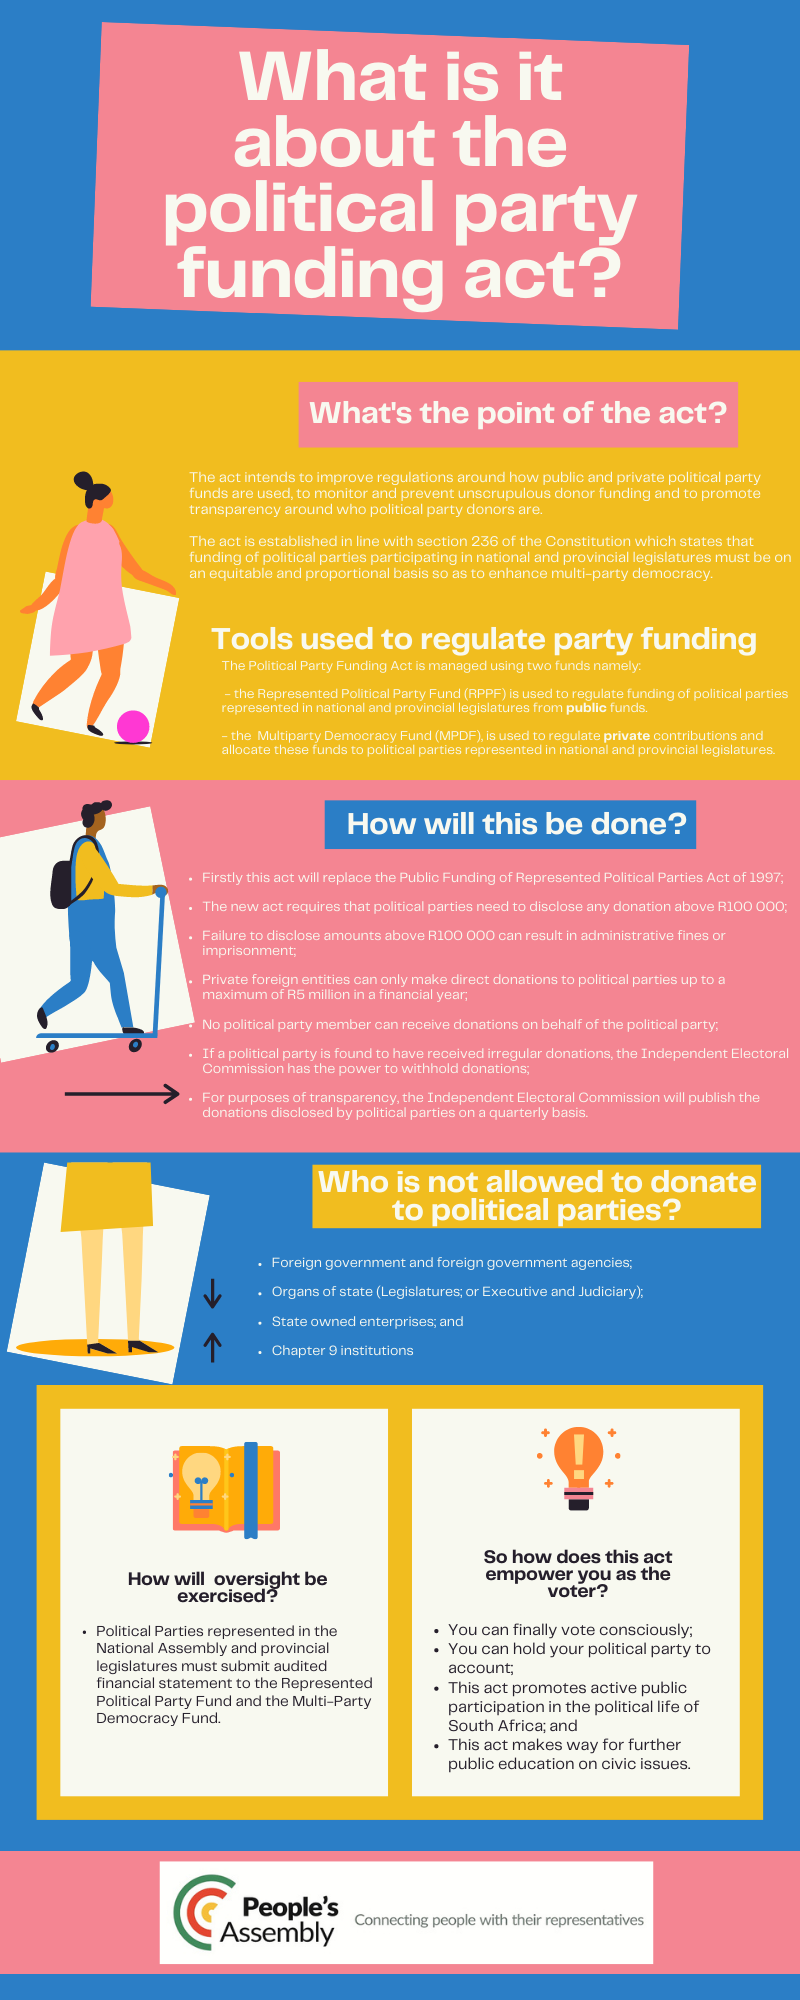 Political party funding act